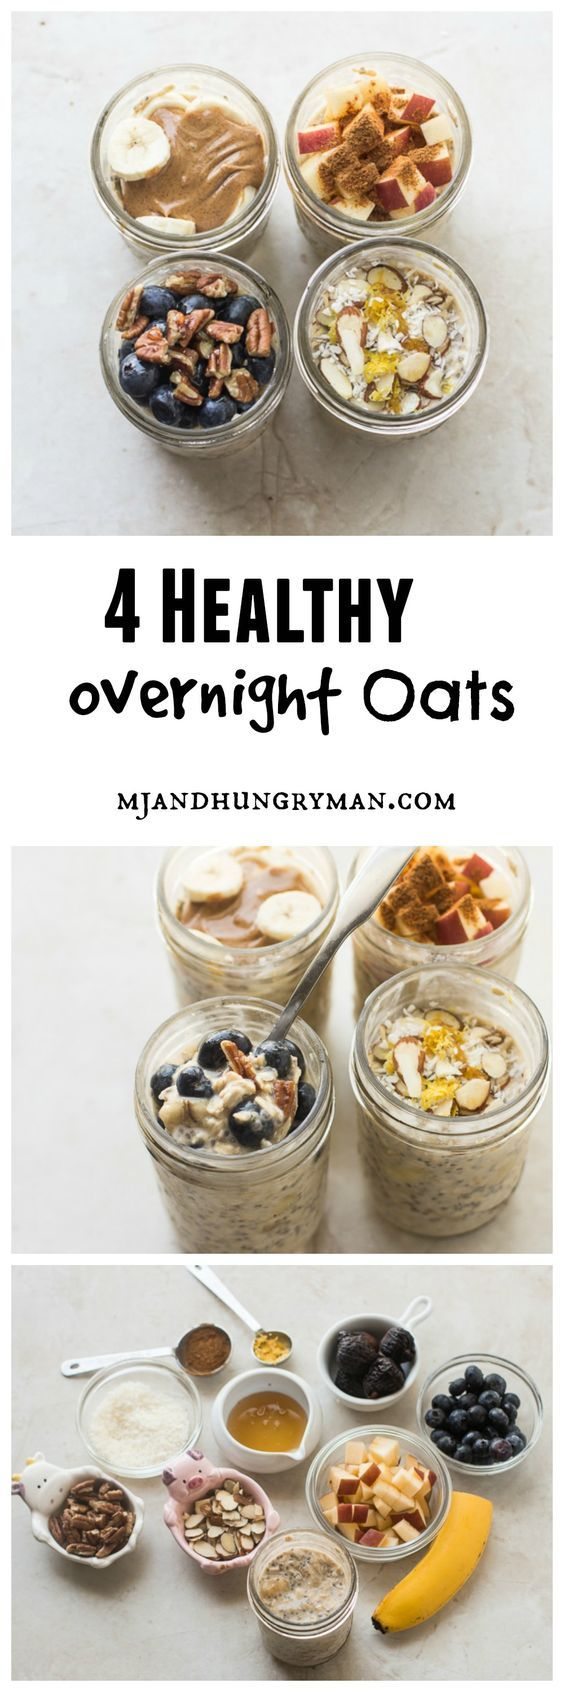 How to make a healthy and delicious overnight oatsHow to make a healthy and delicious overnight oats#breakfastHow to make a healthy and delicious overnight oatsHow to make a healthy and delicious overnight oats#breakfast#veganHow to make a healthy and delicious overnight oatsHow to make a healthy and delicious overnight oats#breakfastHow to make a healthy and delicious overnight oatsHow to make a healthy and delicious overnight oats#breakfast#vegan#desayuno